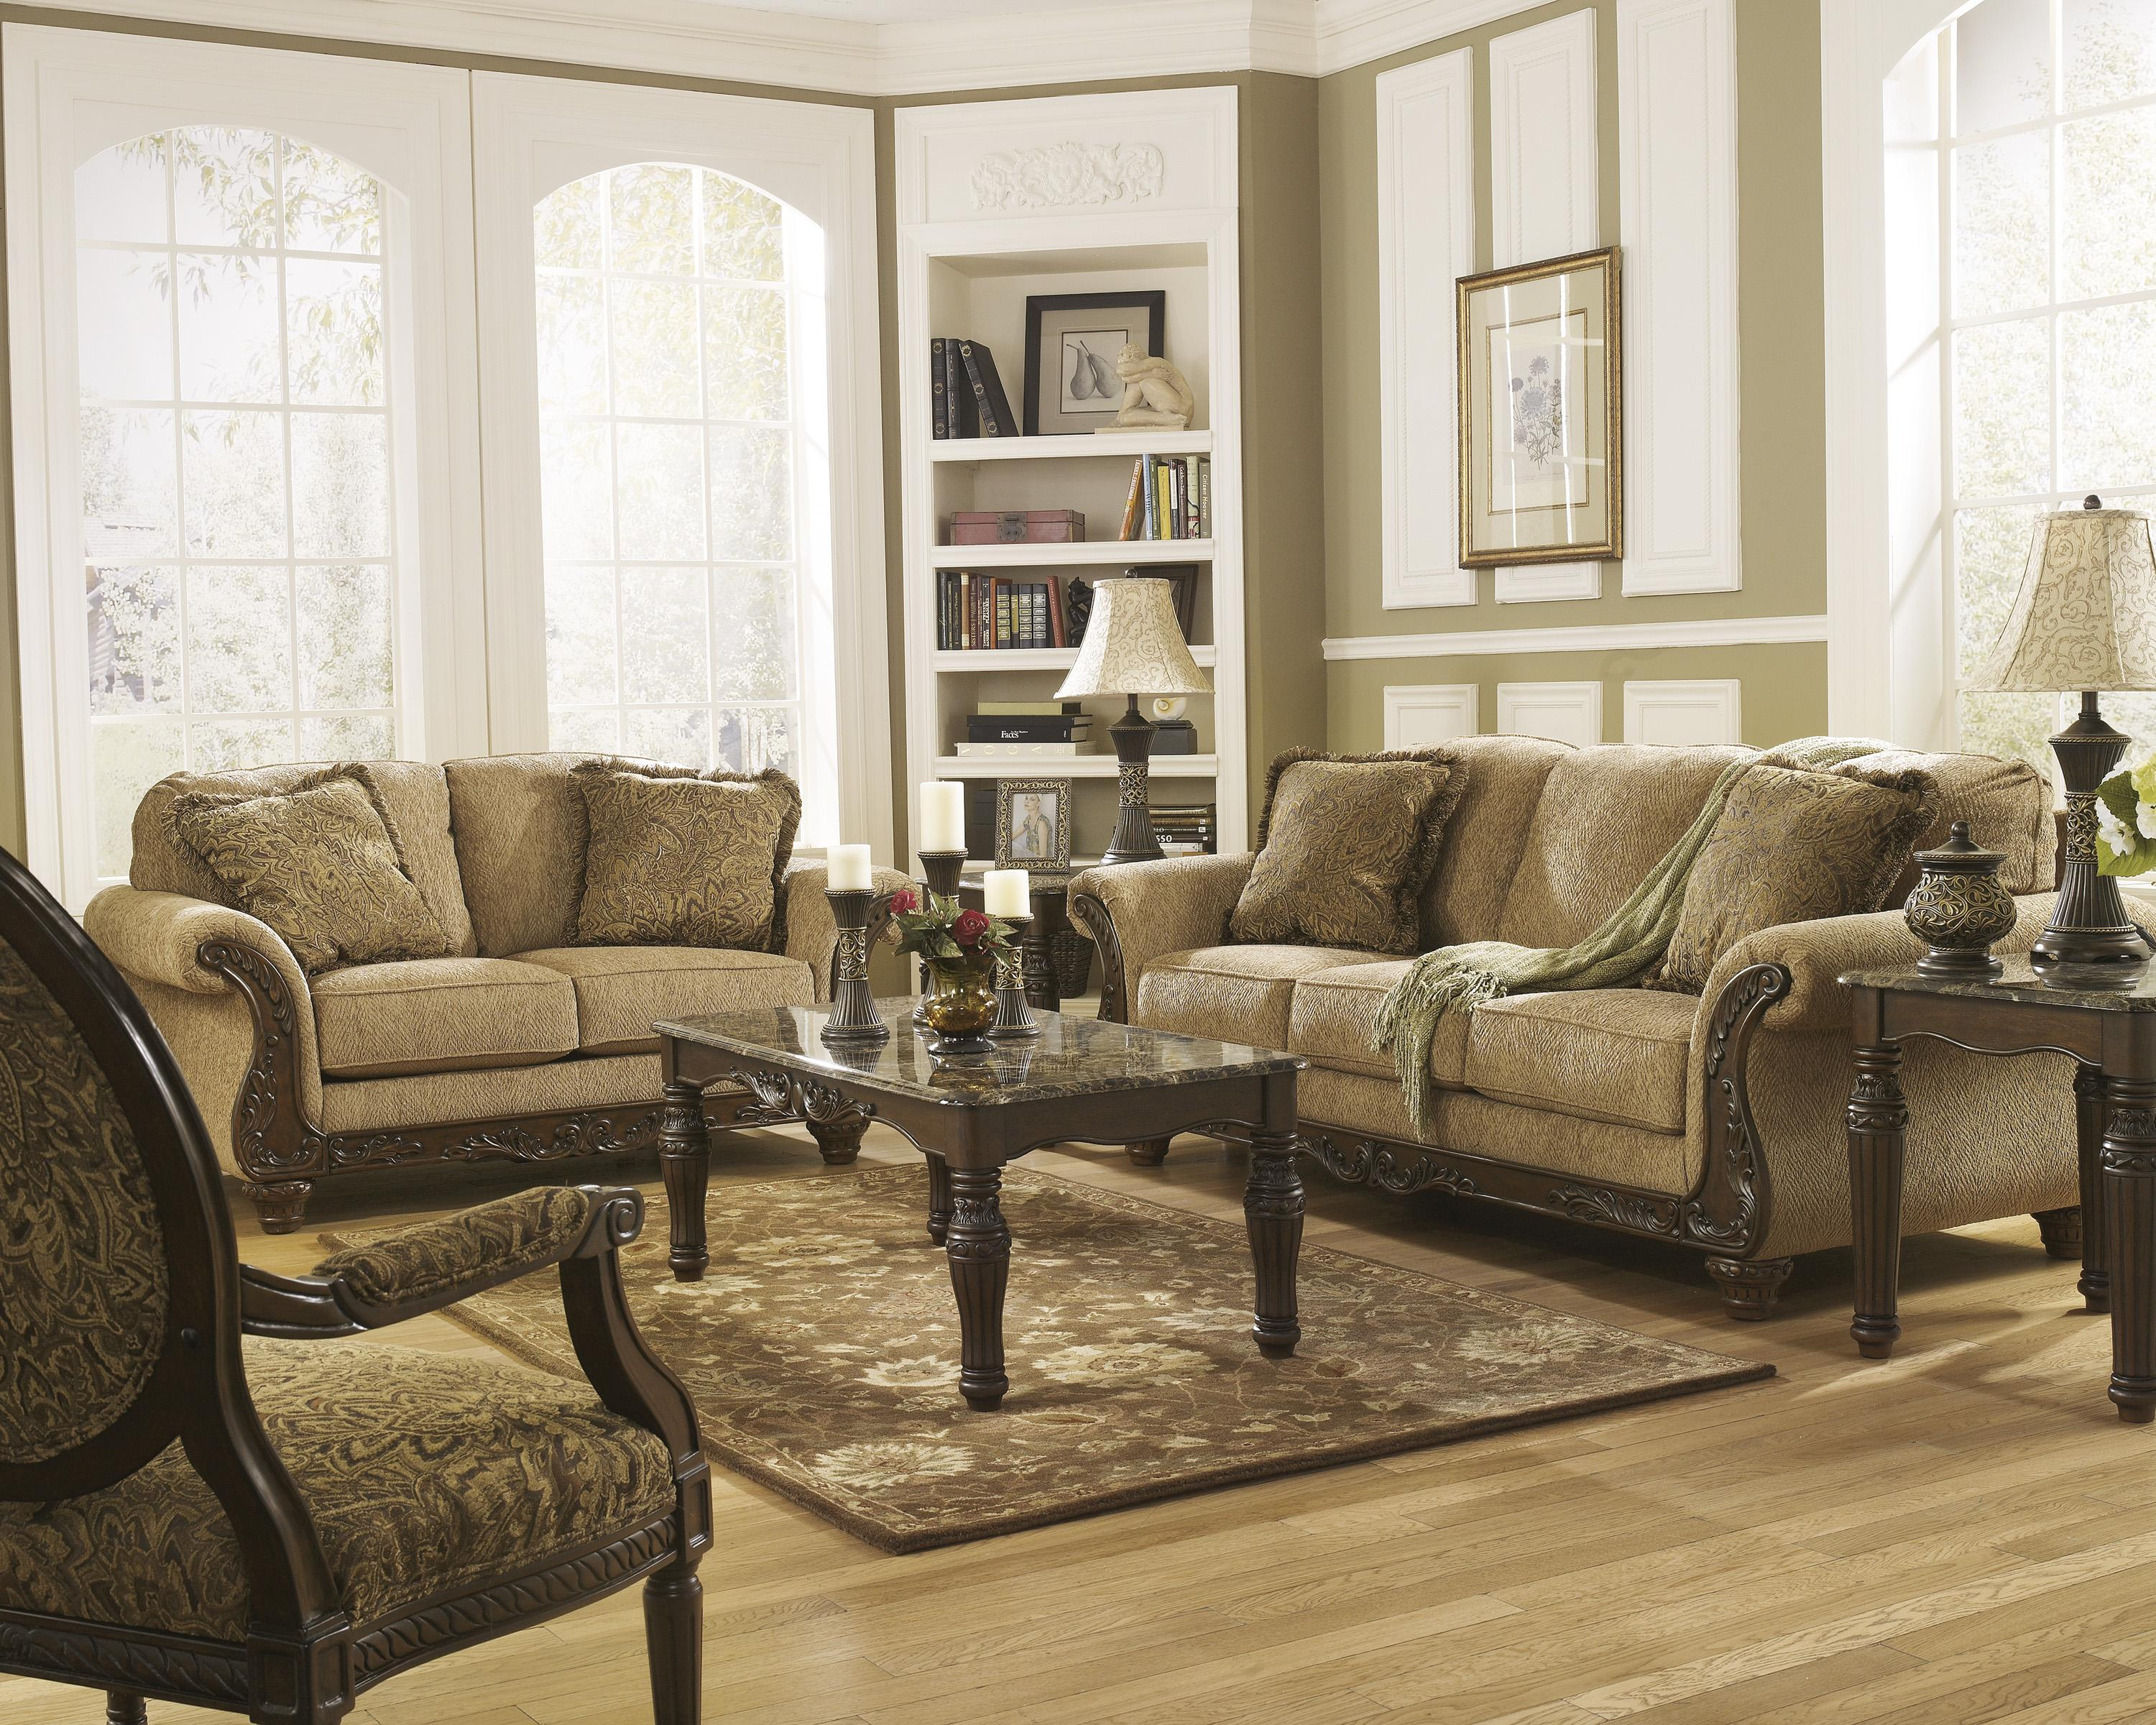 Signature Design by Ashley Cambridge - Amber Stationary Living Room Group - Item Number: 39401 Living Room Group 3